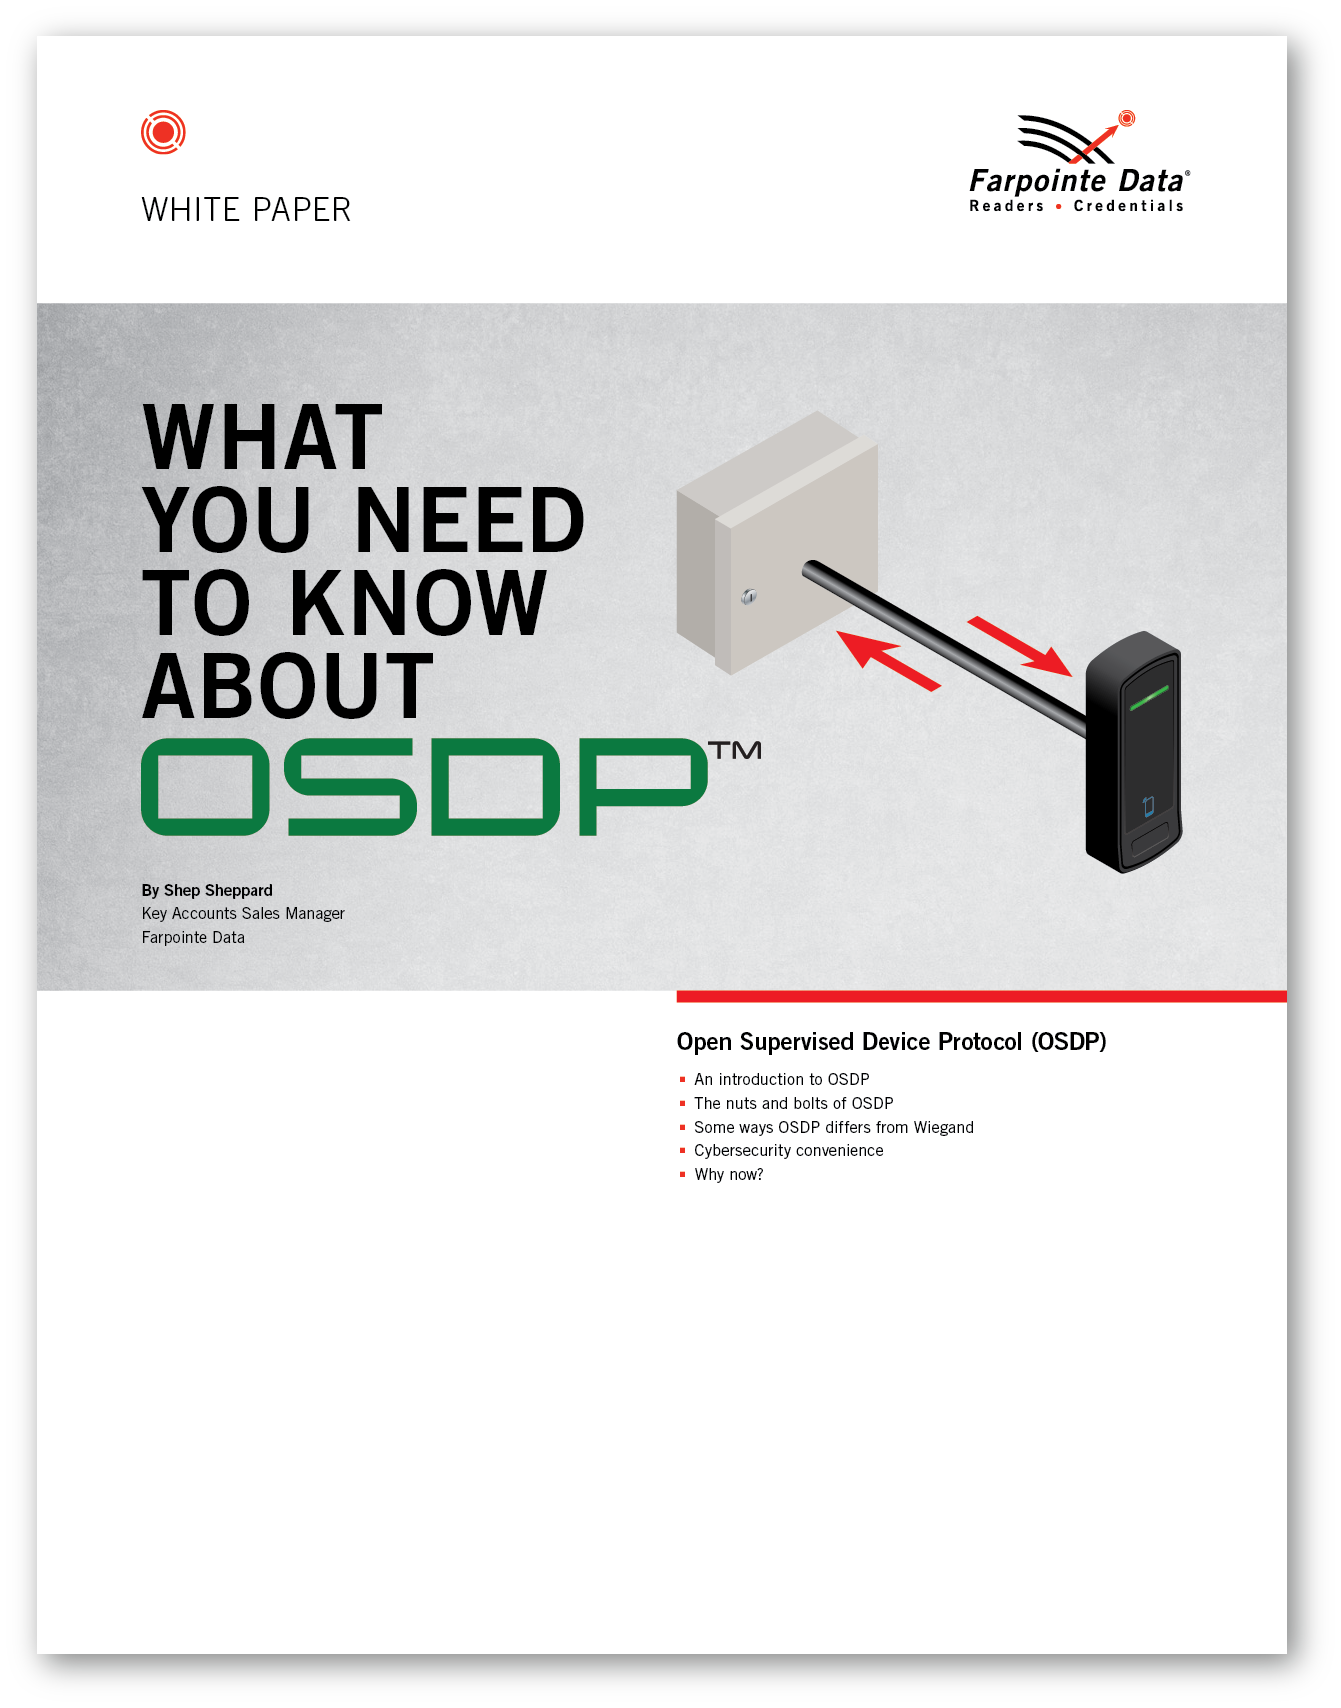 White Paper: What You Need to Know About OSDP